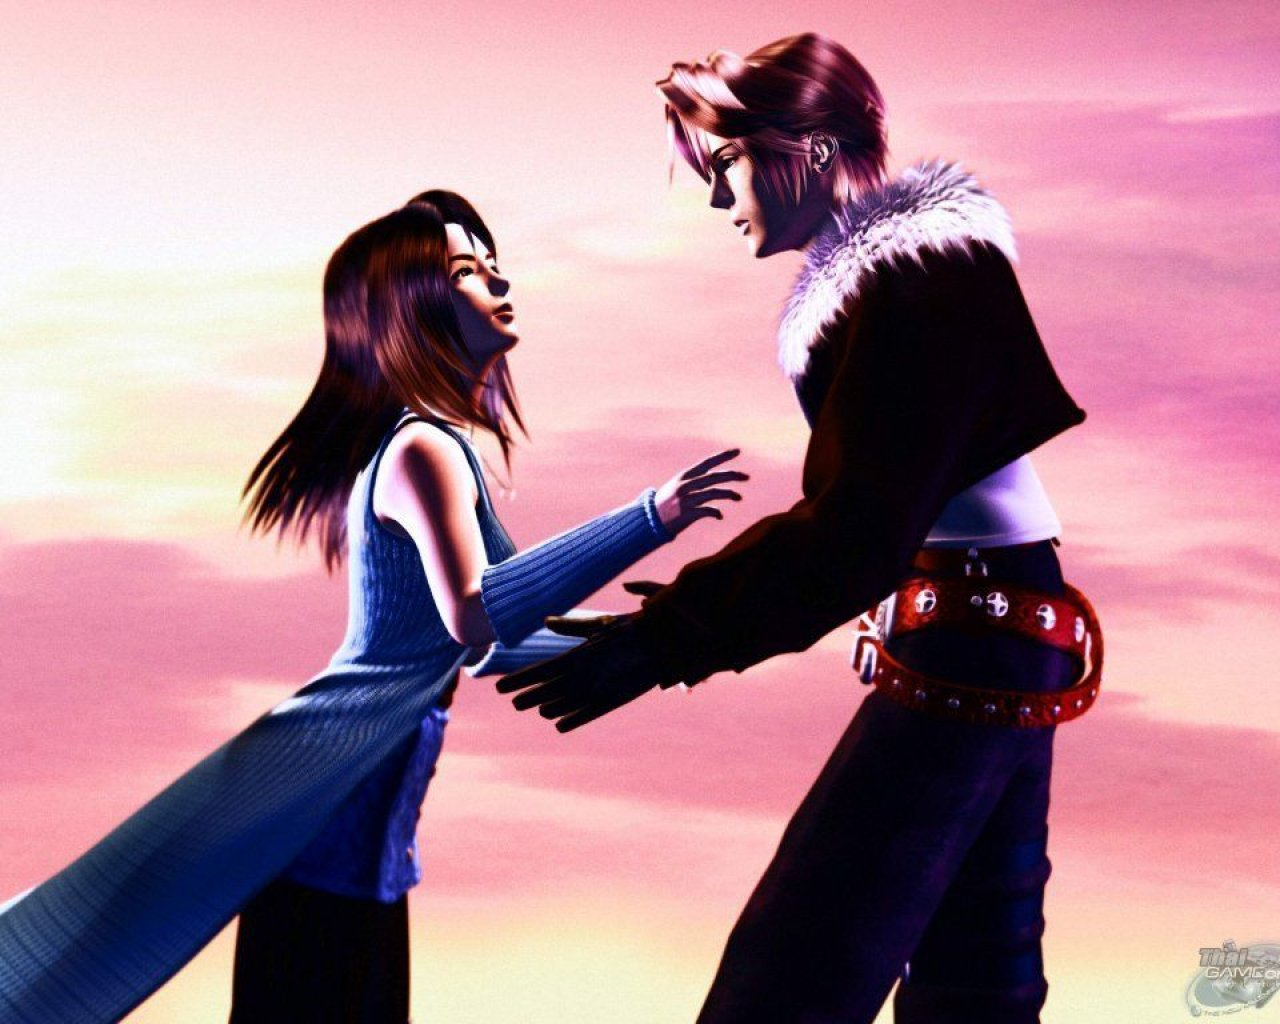 Final Fantasy 8 Wallpapers - Download Final Fantasy 8 Wallpapers ... Final Fantasy Rinoa And Squall